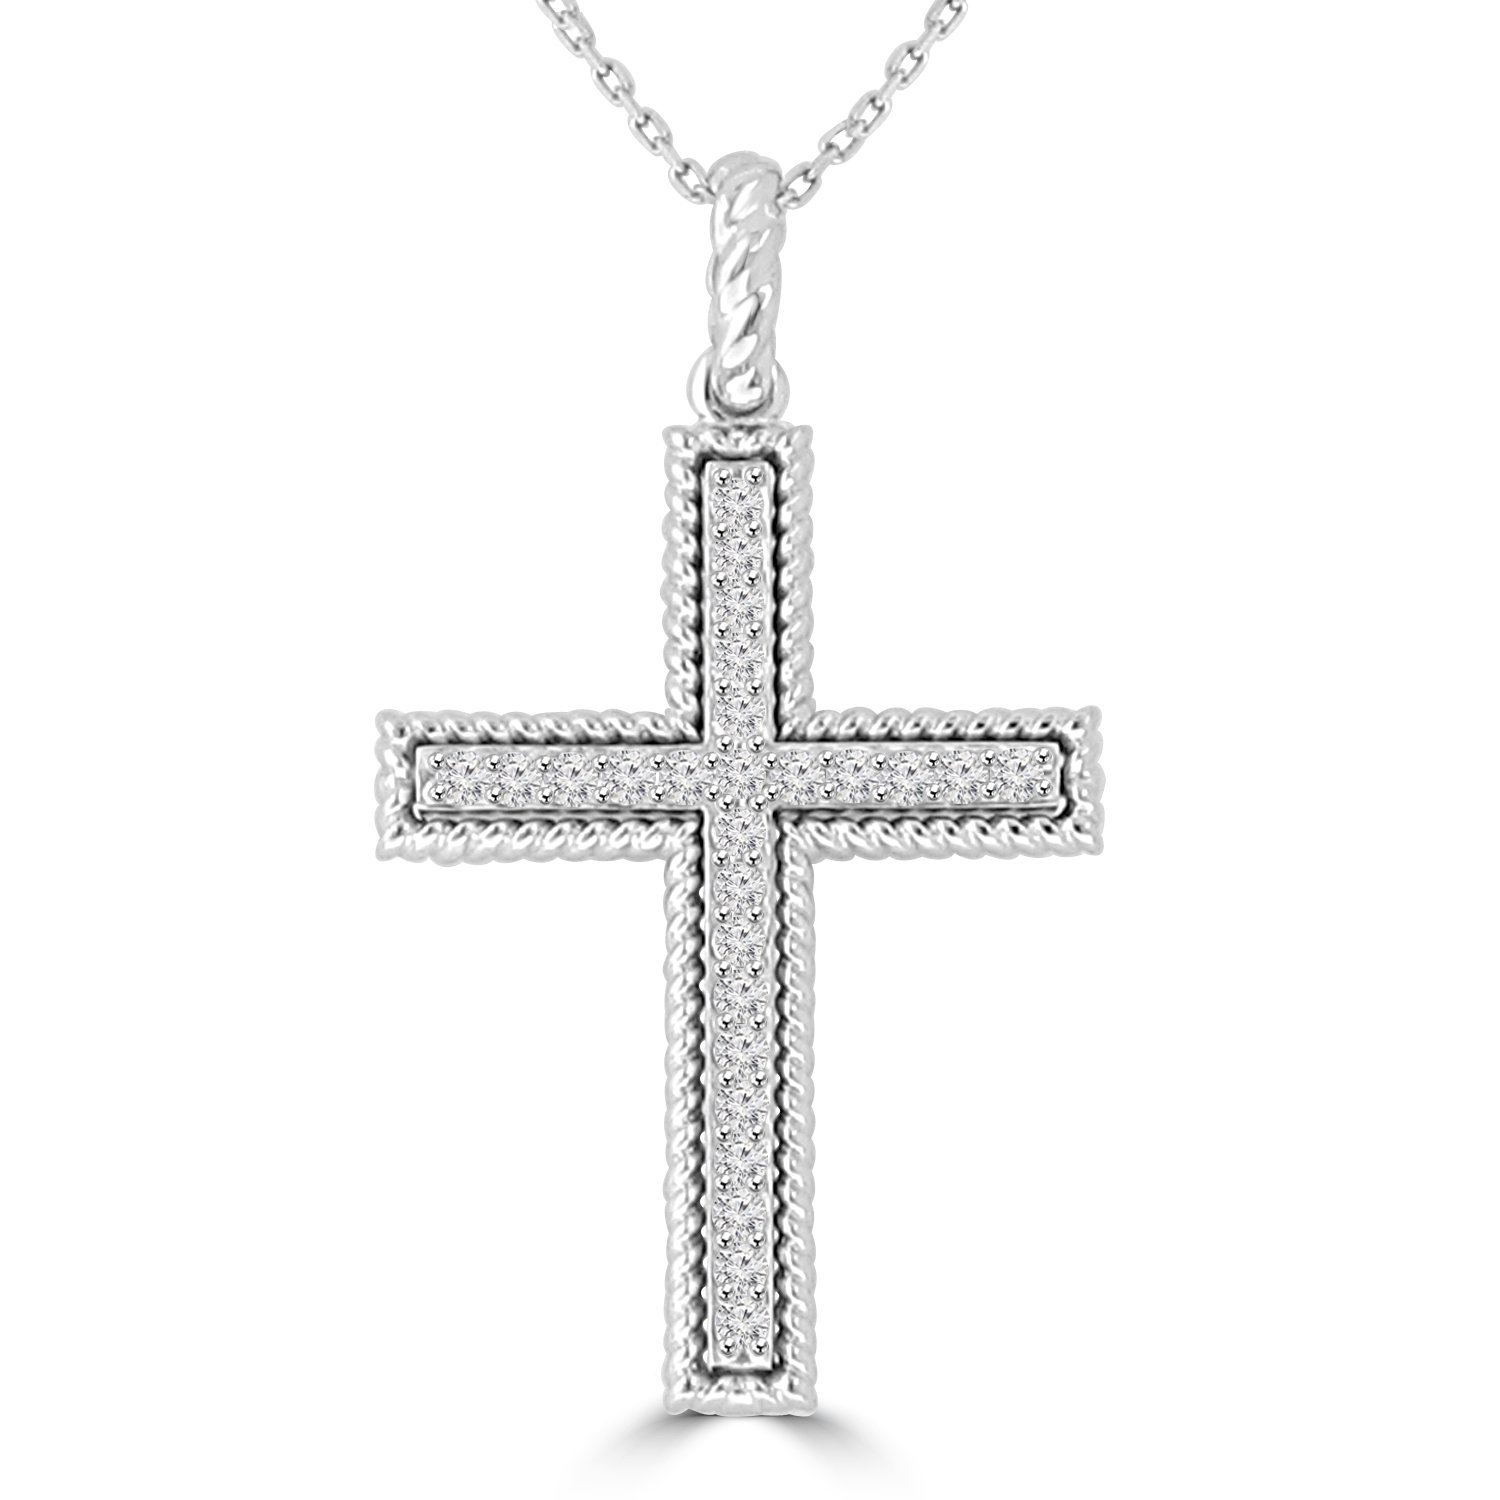 0.45 ct Ladies Round Cut Diamond Cross Pendant Necklace (G Color SI-1 Clarity) in 14 kt White Gold